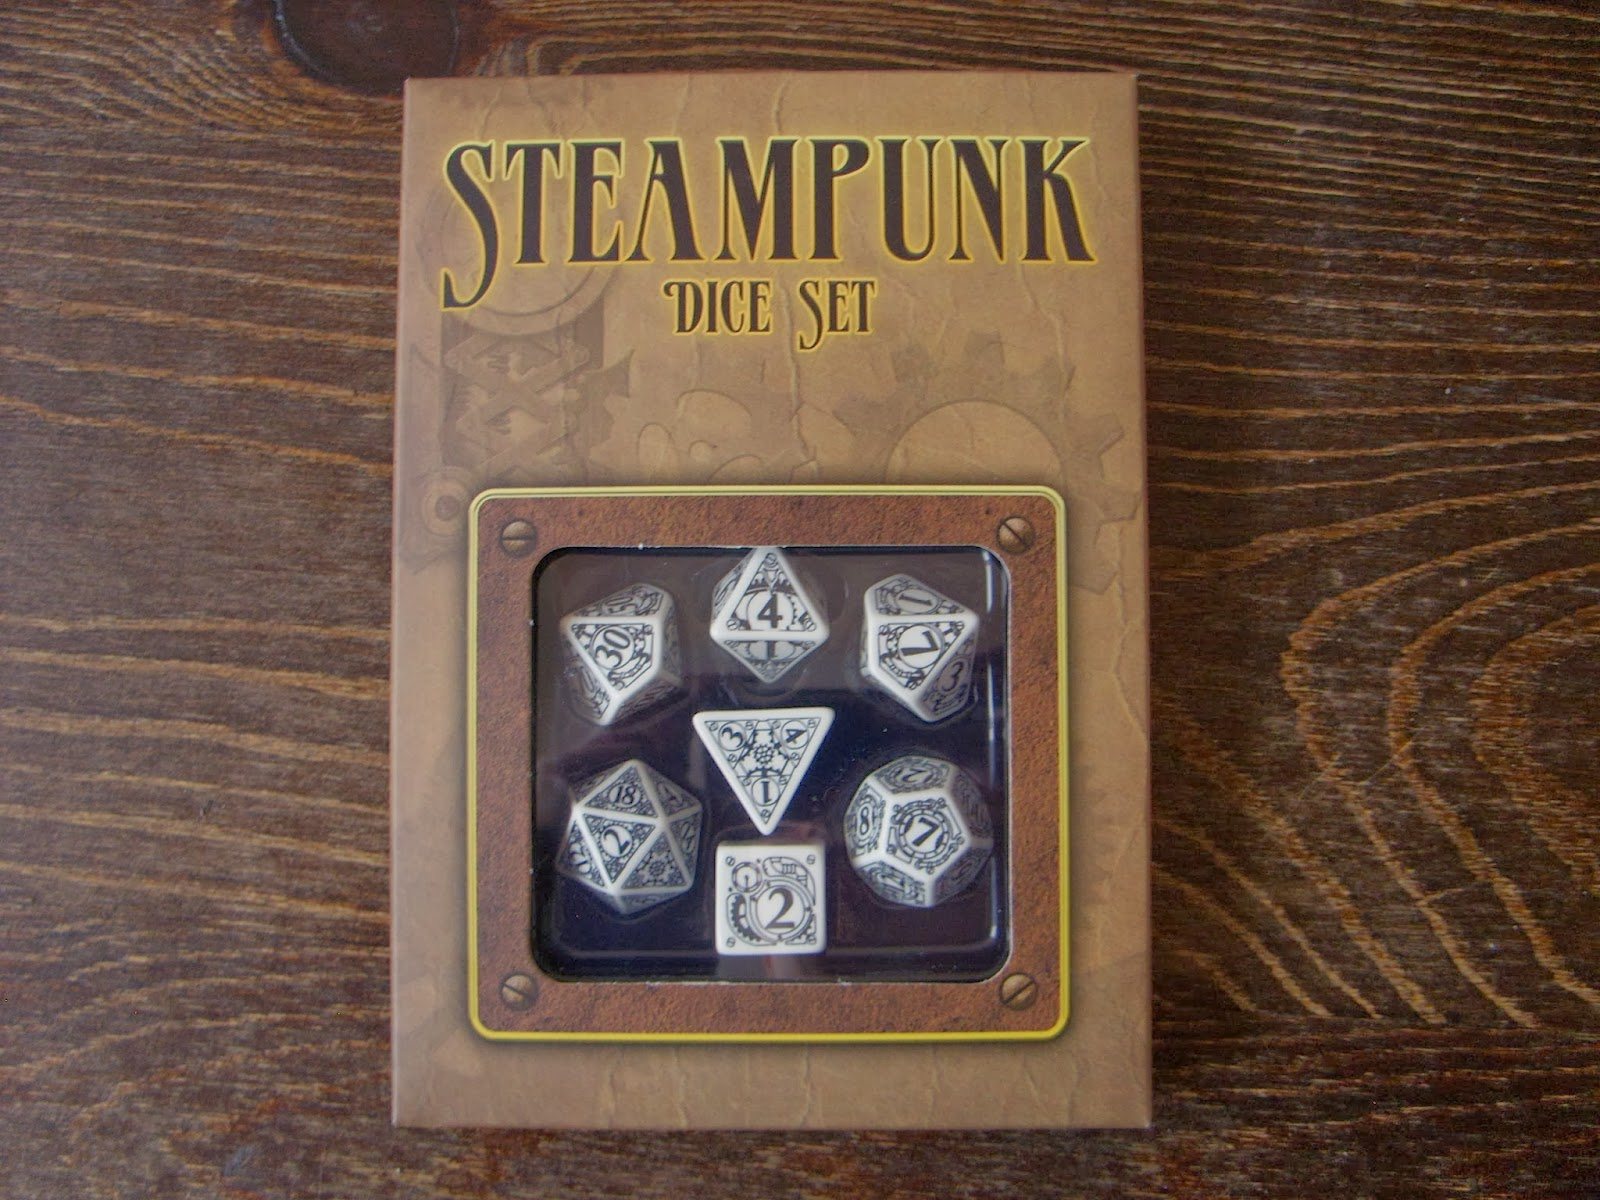 Steampunk dice are my favorite design from Q-workshop. Just look at them,  how can you not like them?